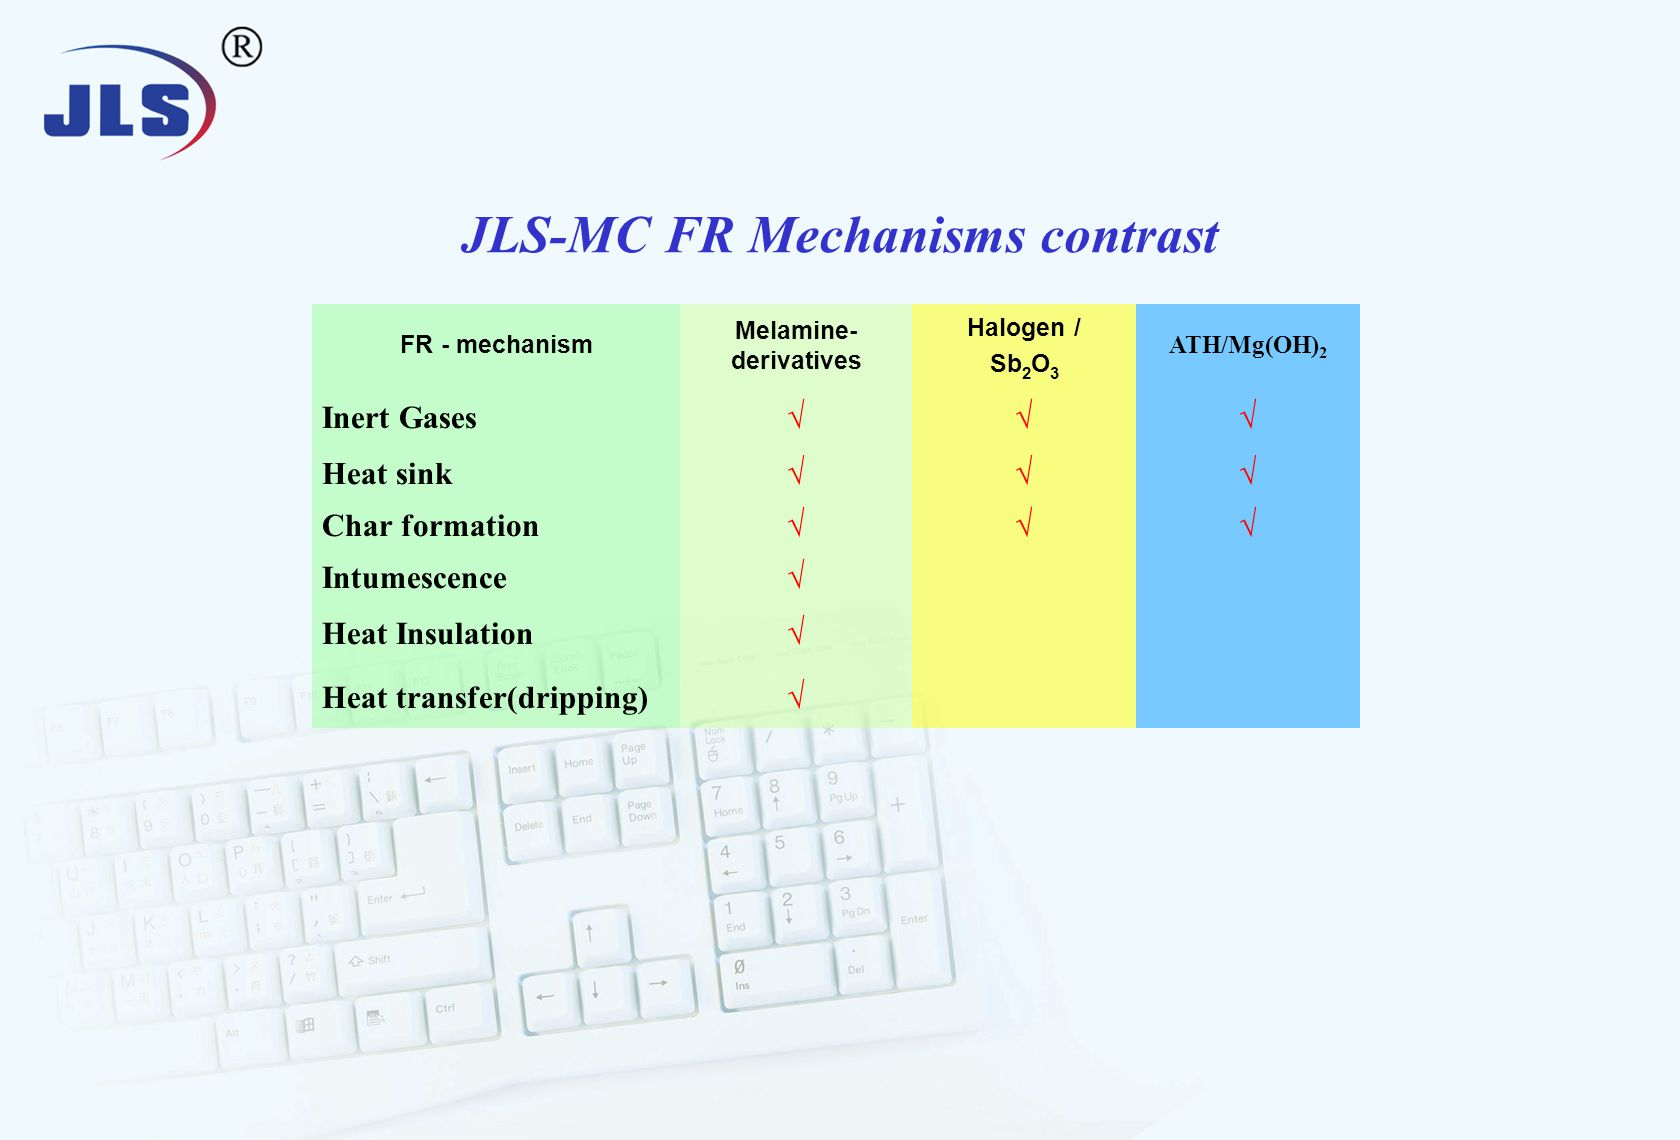 JLS-MC FR Mechanisms contrast FR - mechanism Melamine- derivatives Halogen / Sb 2 O 3 ATH/Mg(OH) 2 Inert Gases√√√ Heat sink√√√ Char formation√√√ Intumescence√ Heat Insulation√ Heat transfer(dripping)√